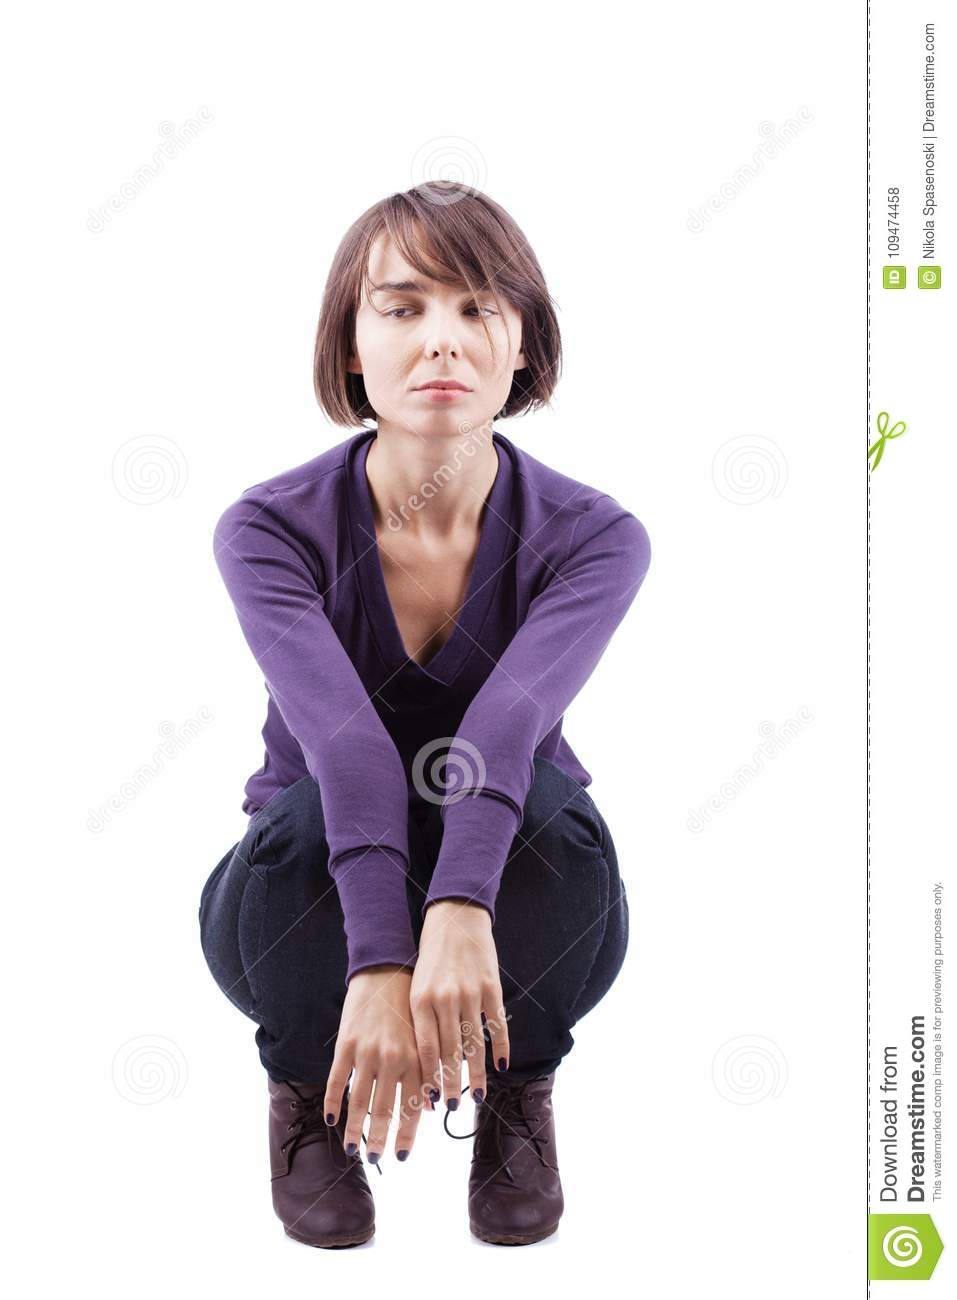 Young Girl Crouching On Floor Stock Photo - Download Image